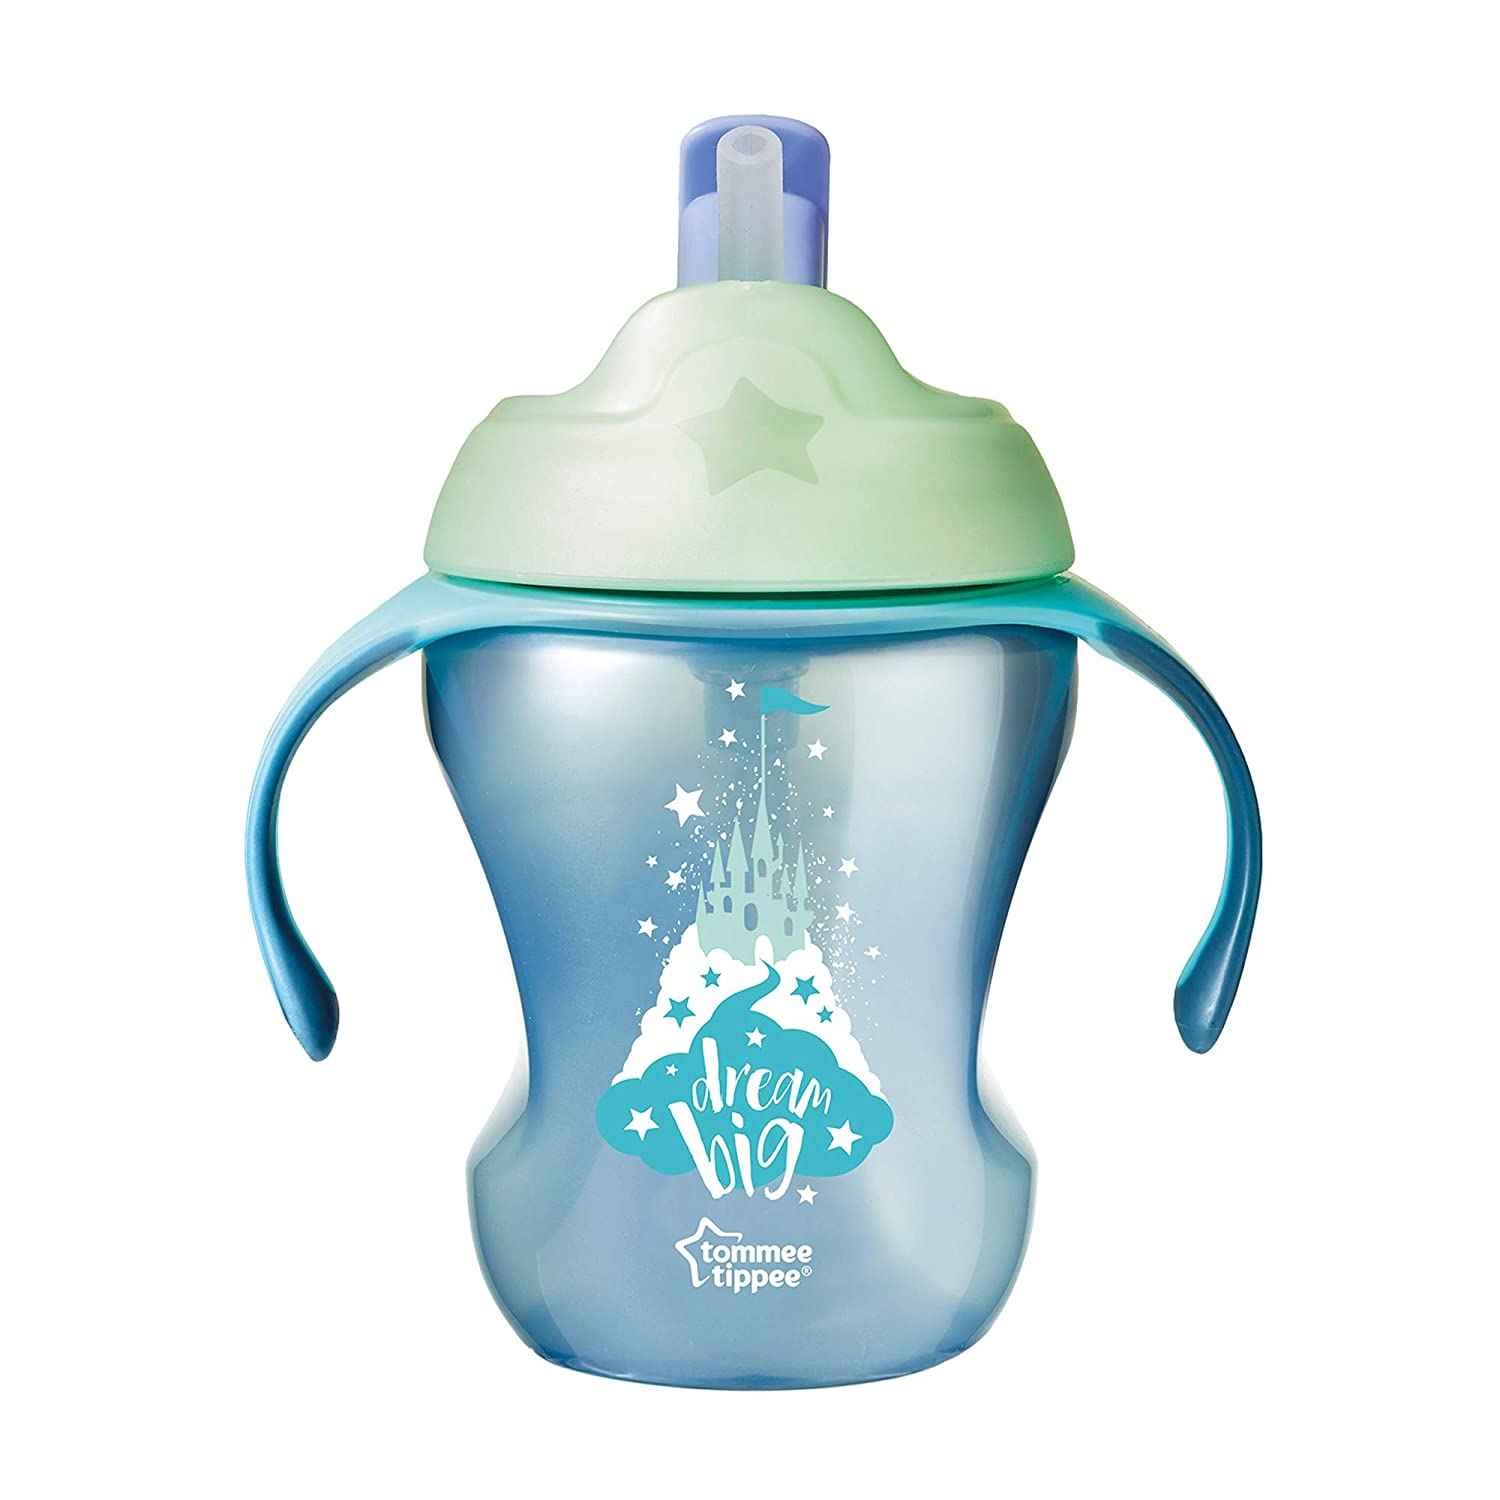 Tommee Tippee Trainer Straw Cup 7 Months+, Blue (Colours May Vary) Mayborn Group 44701391